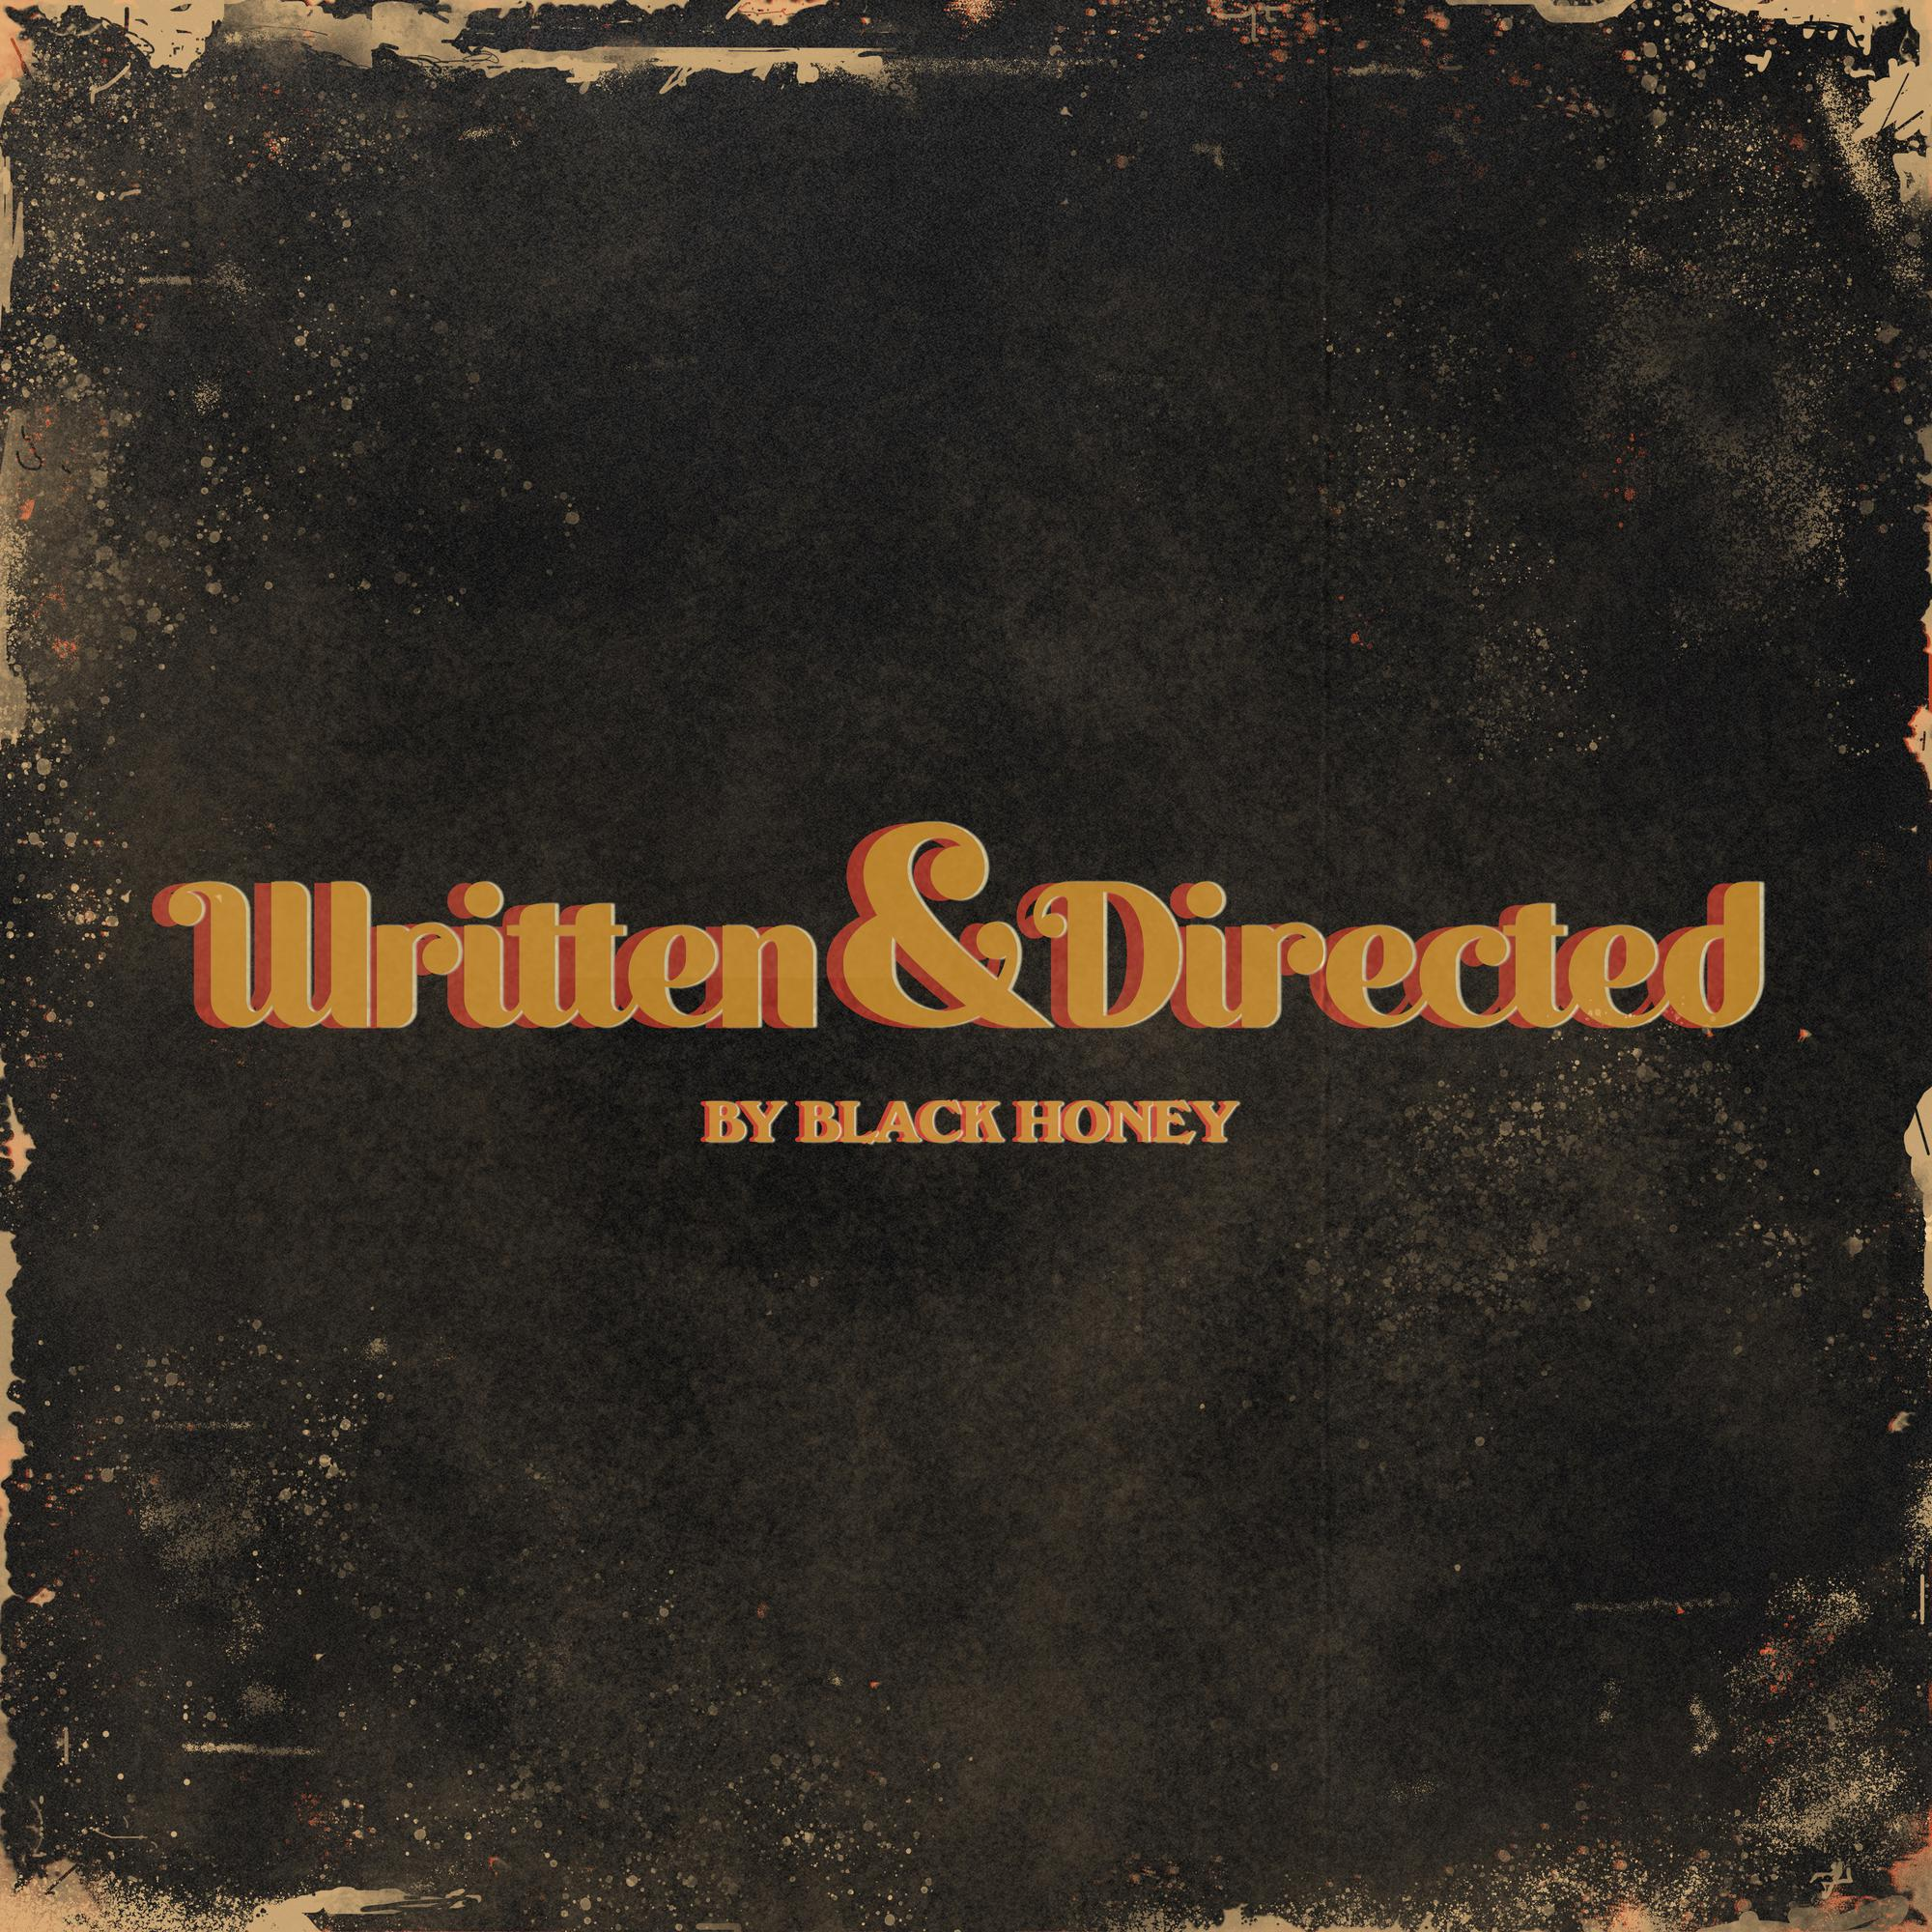 Black Honey - Written & Directed [LP]